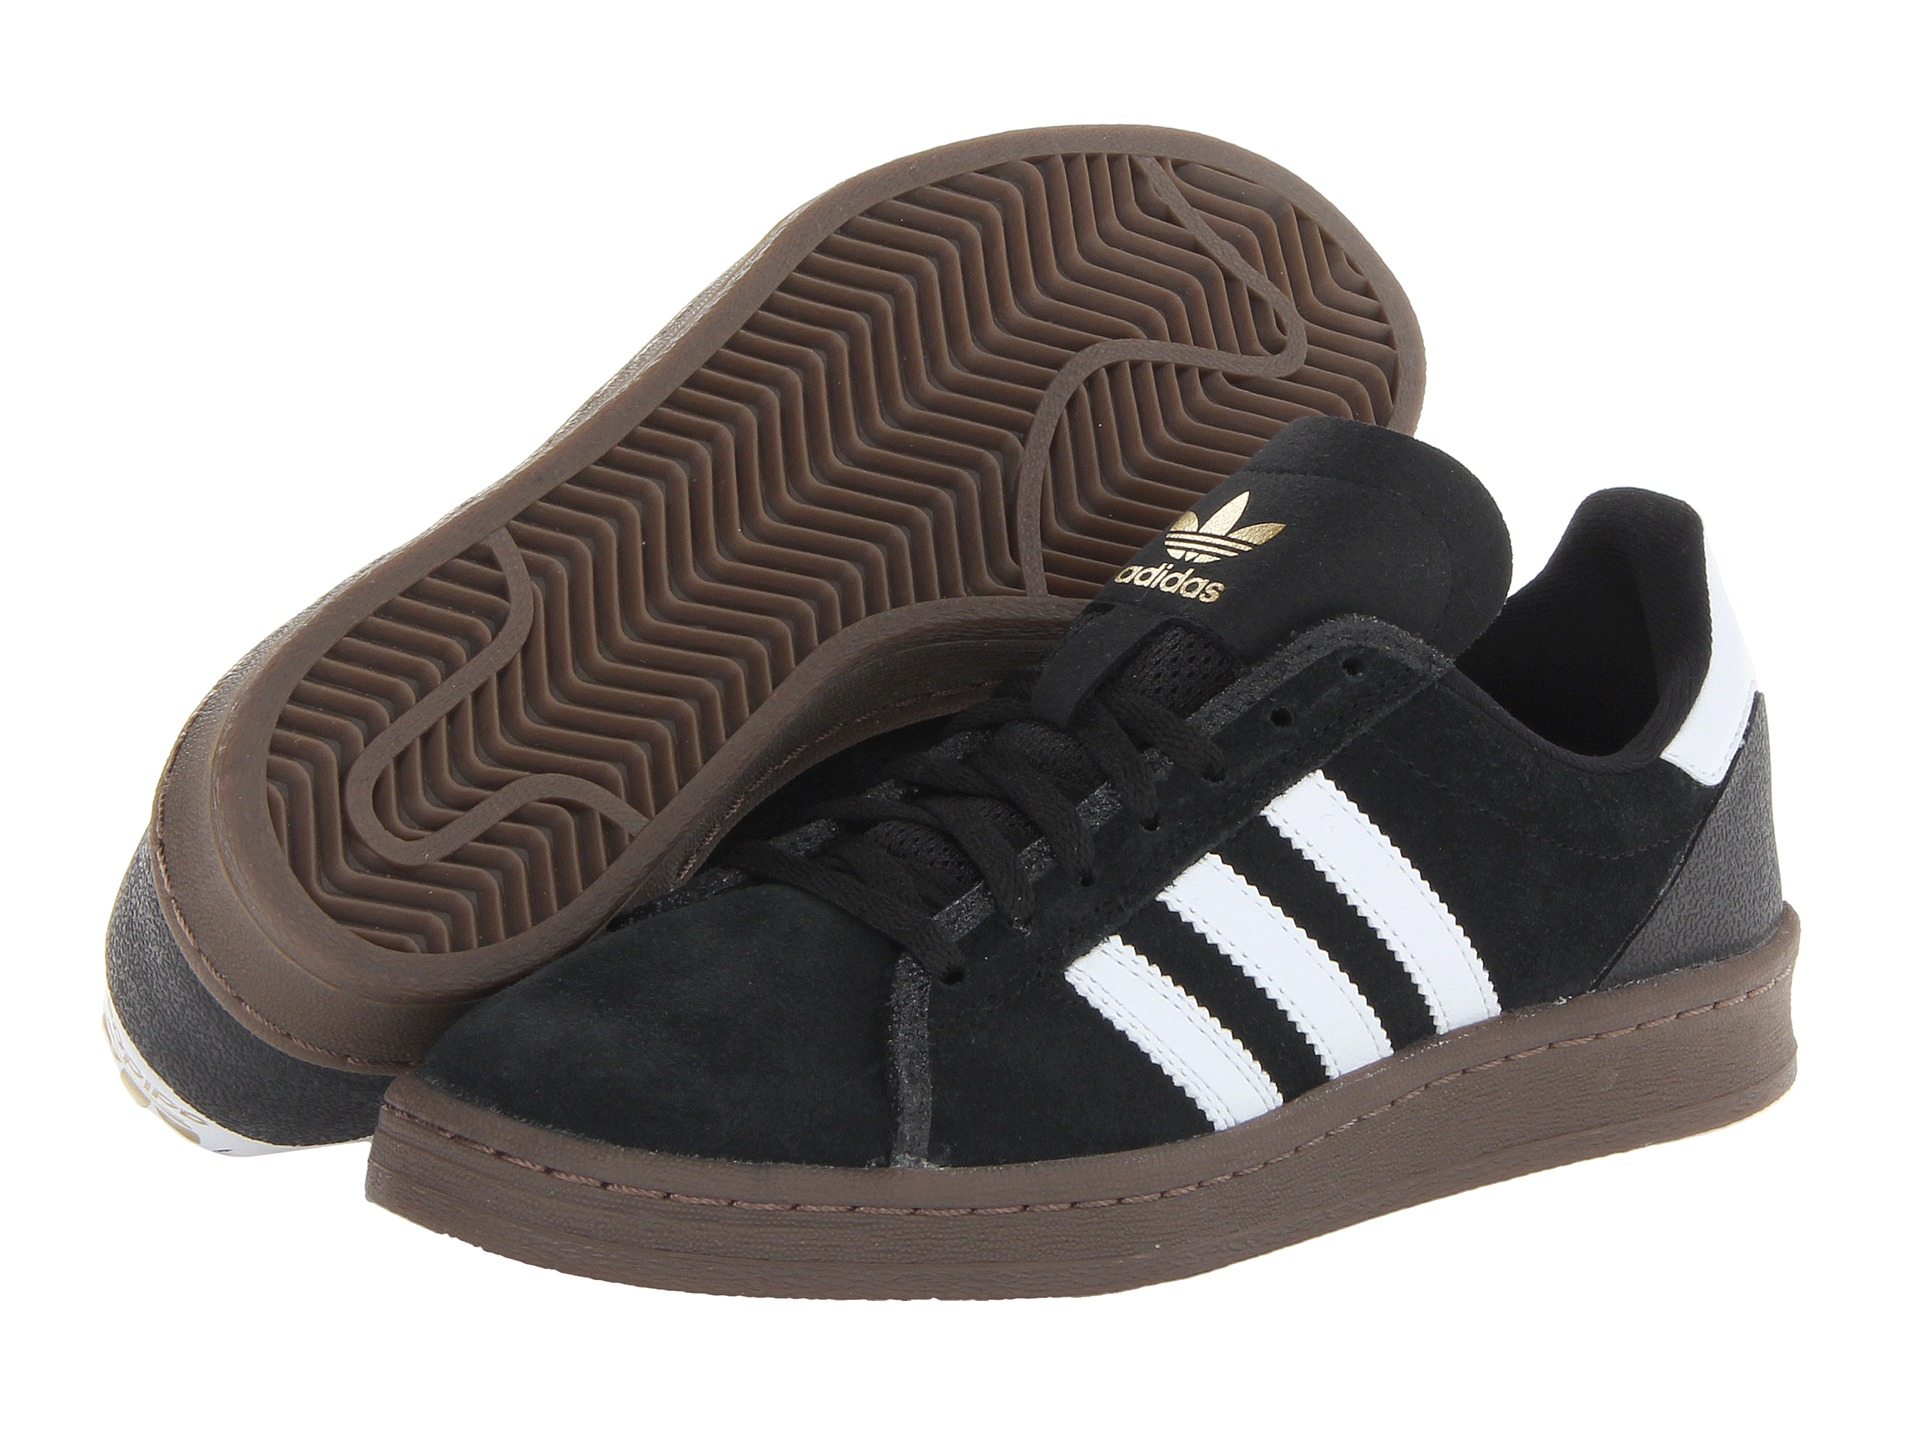 zappos adidas mens shoes leather sandals for men